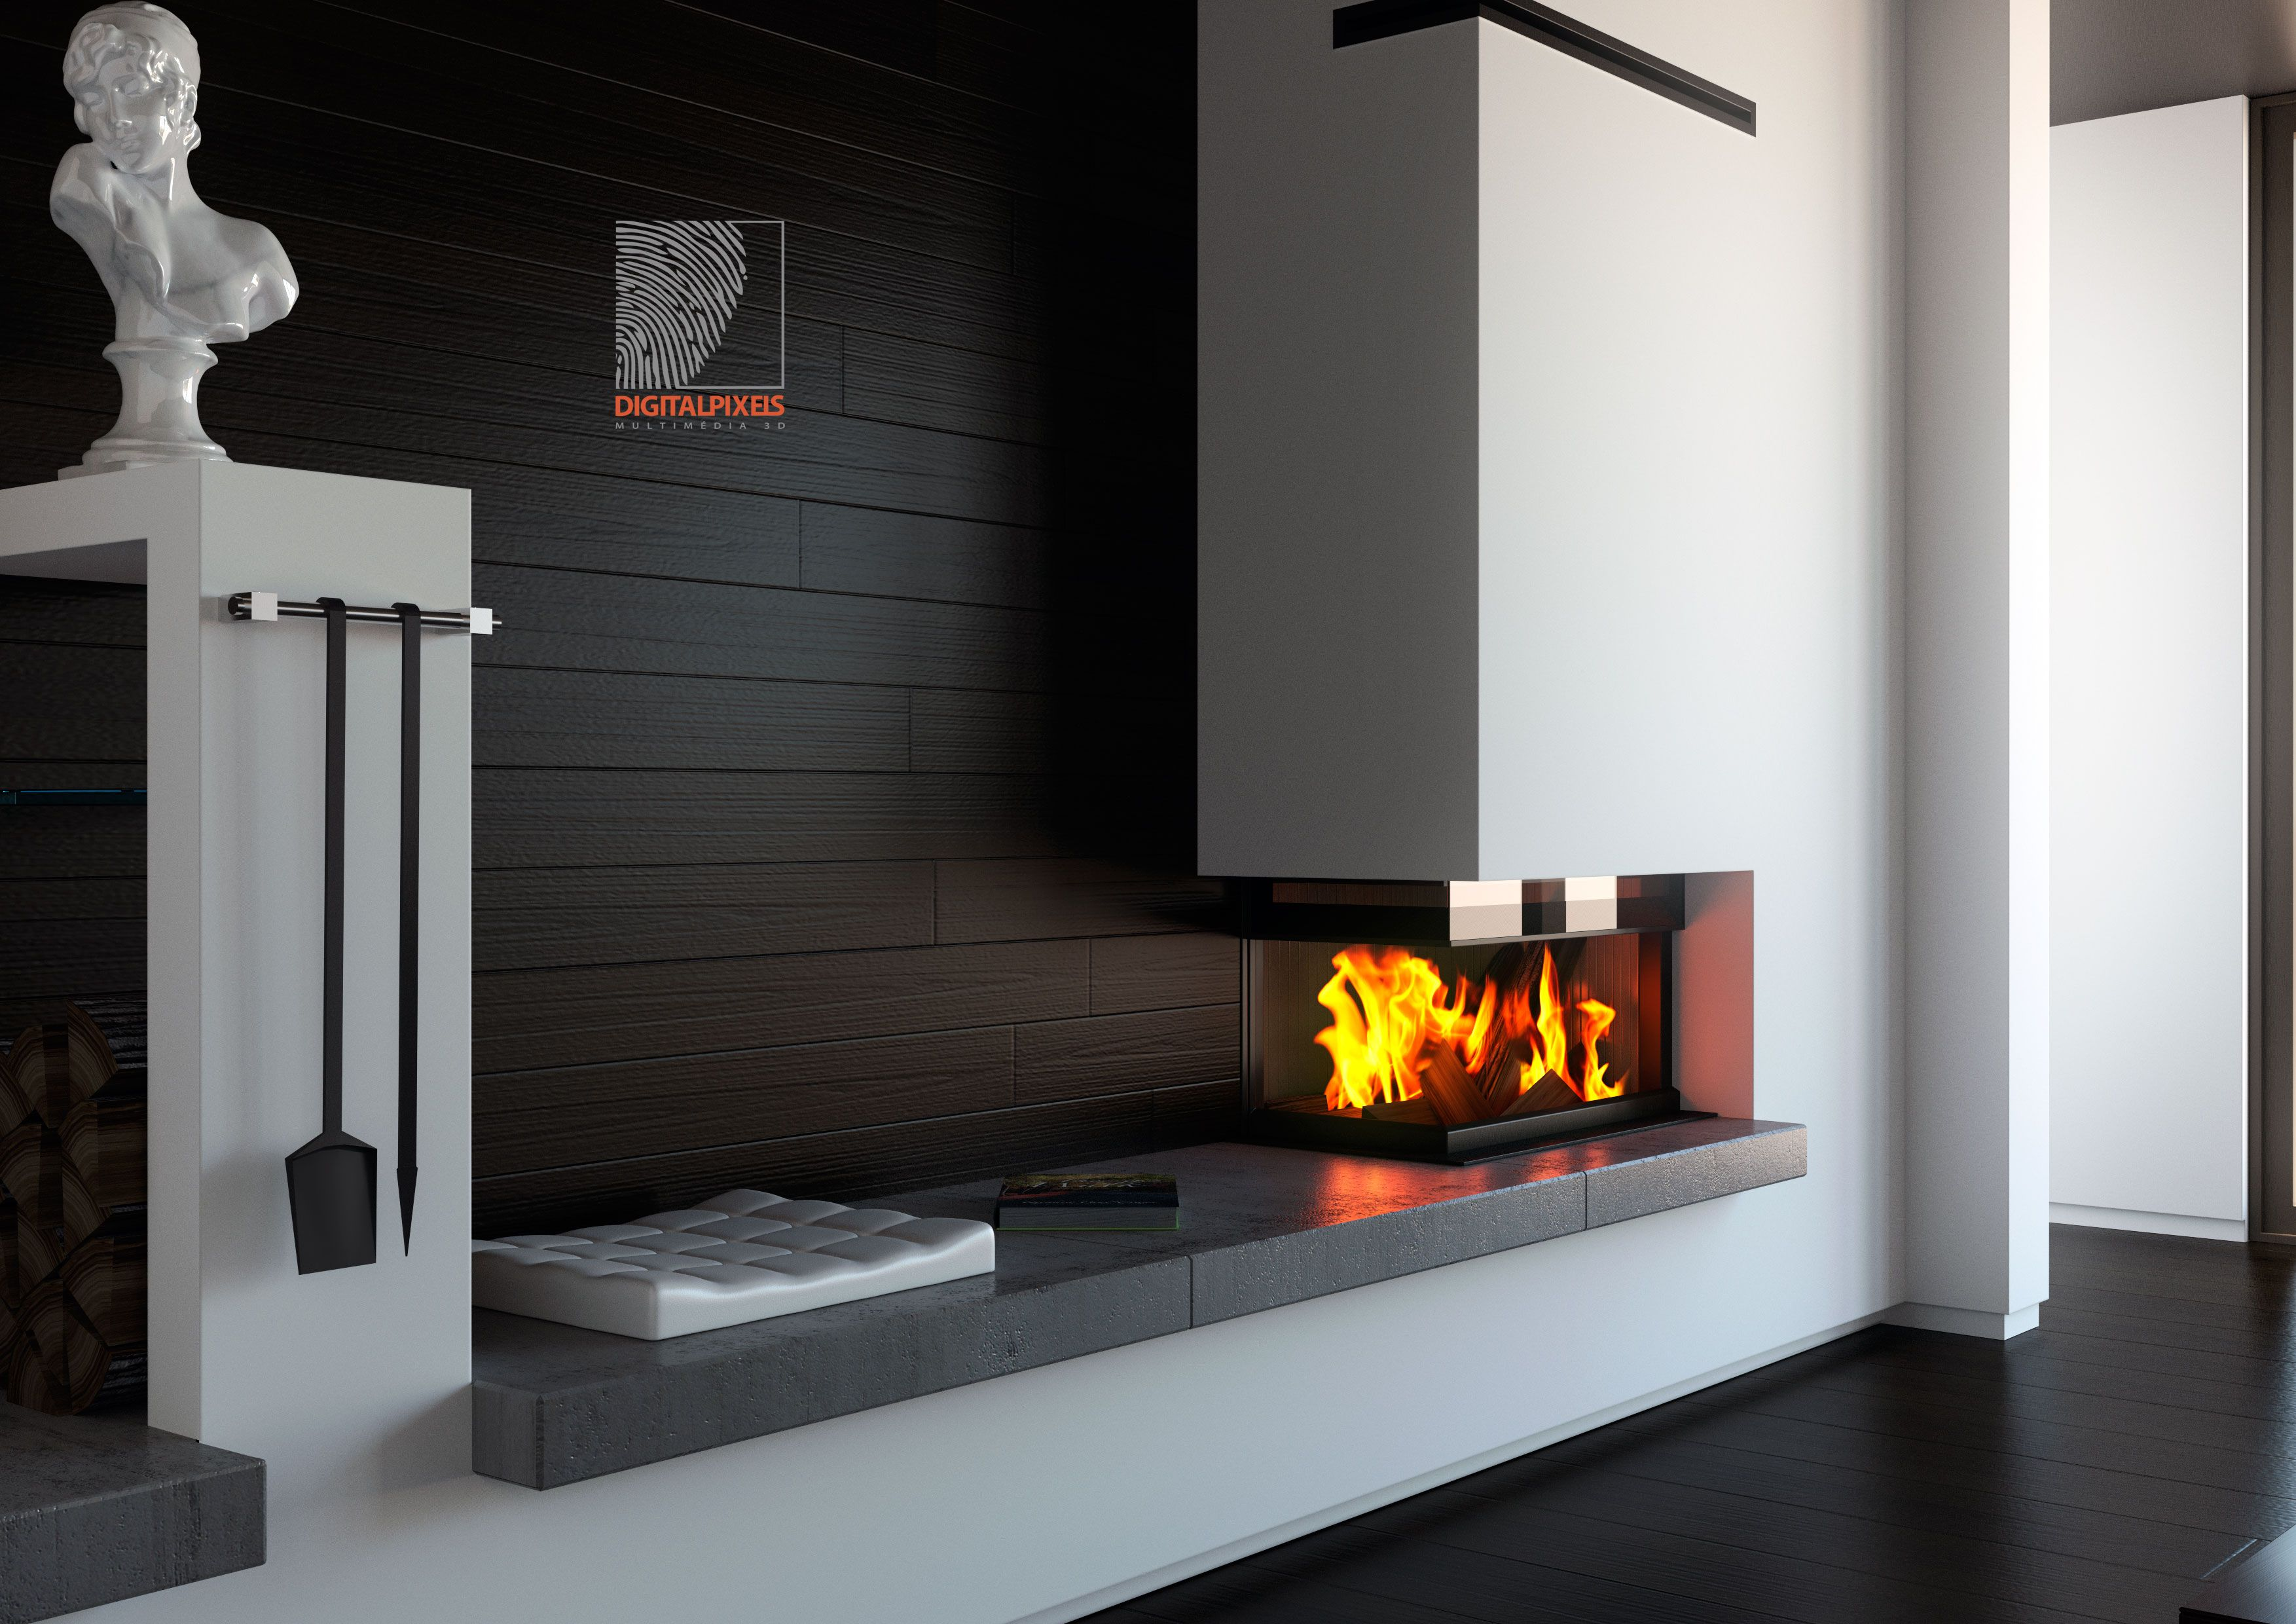 Fireplace 3ds Max Iray Render